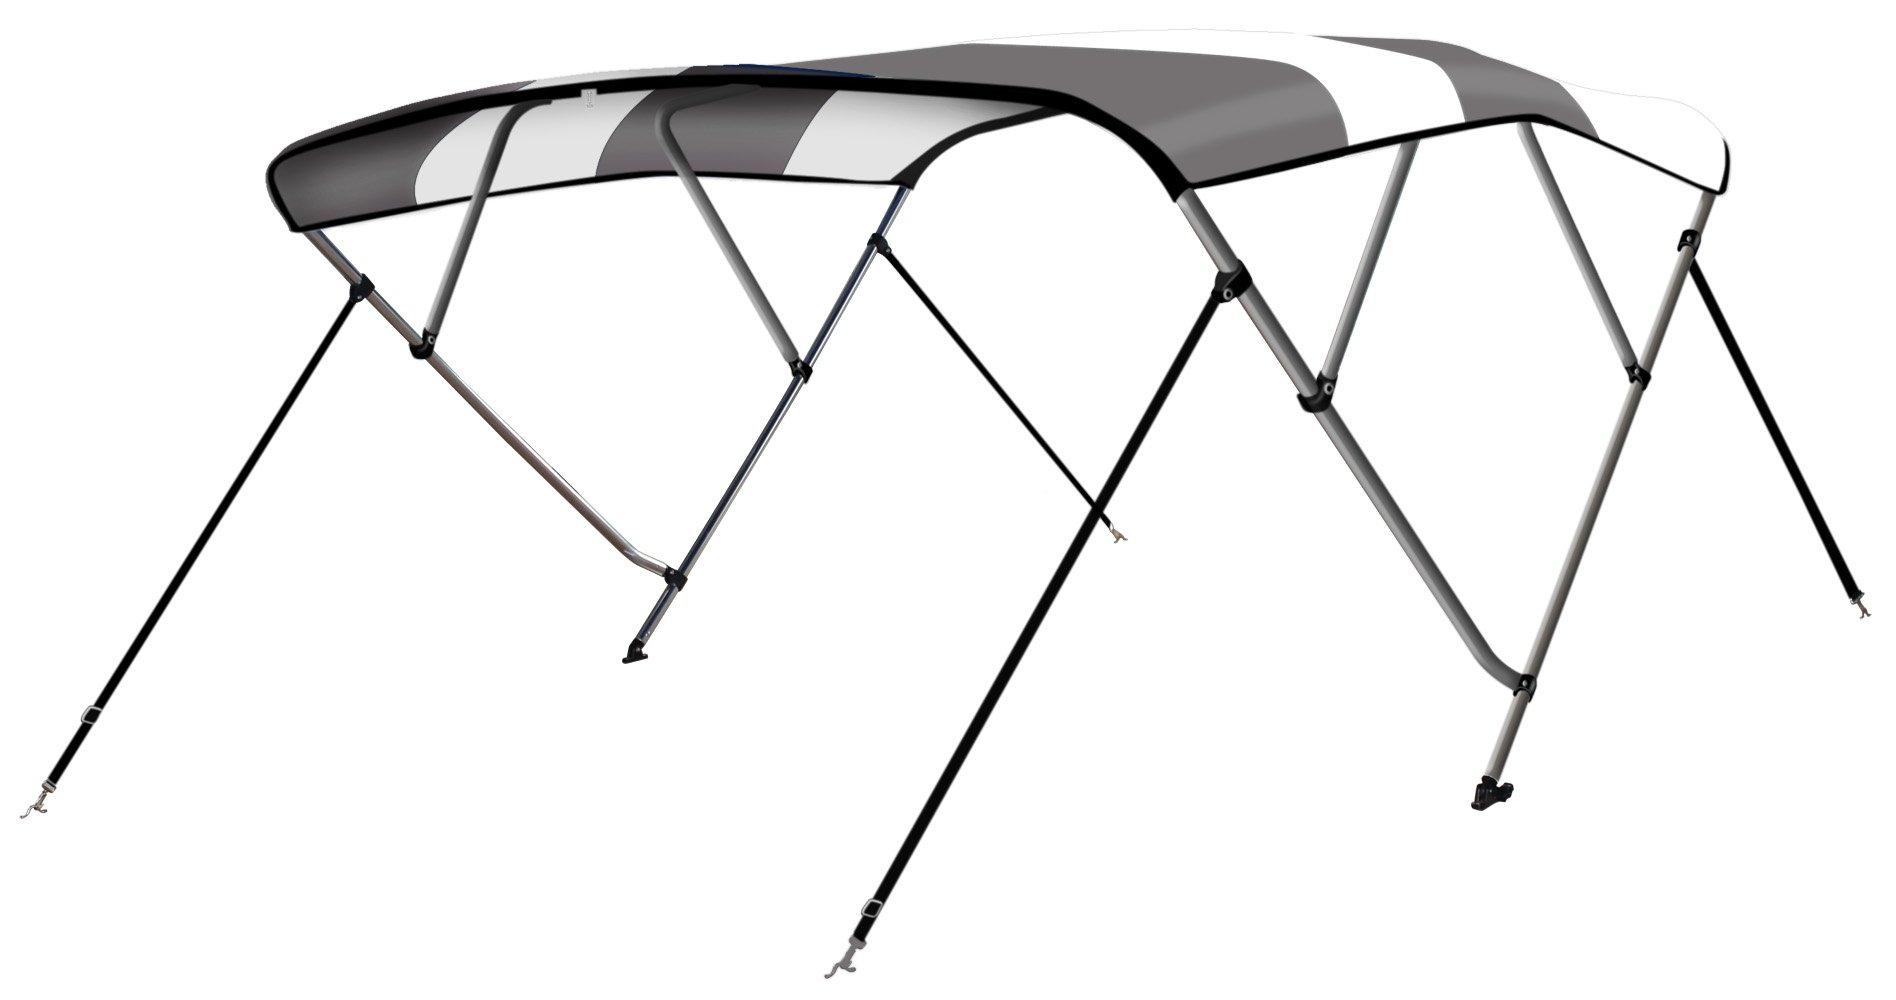 Leader Accessories Two Tone Grey 4 Bow 8'L x 54'' H x 85''-90'' W Bimini Top Boat Cover 4 Straps for Front and Rear Includes All Mounting Hardwares 1 Inch Aluminum Frame with Straps and Storage Boot by Leader Accessories